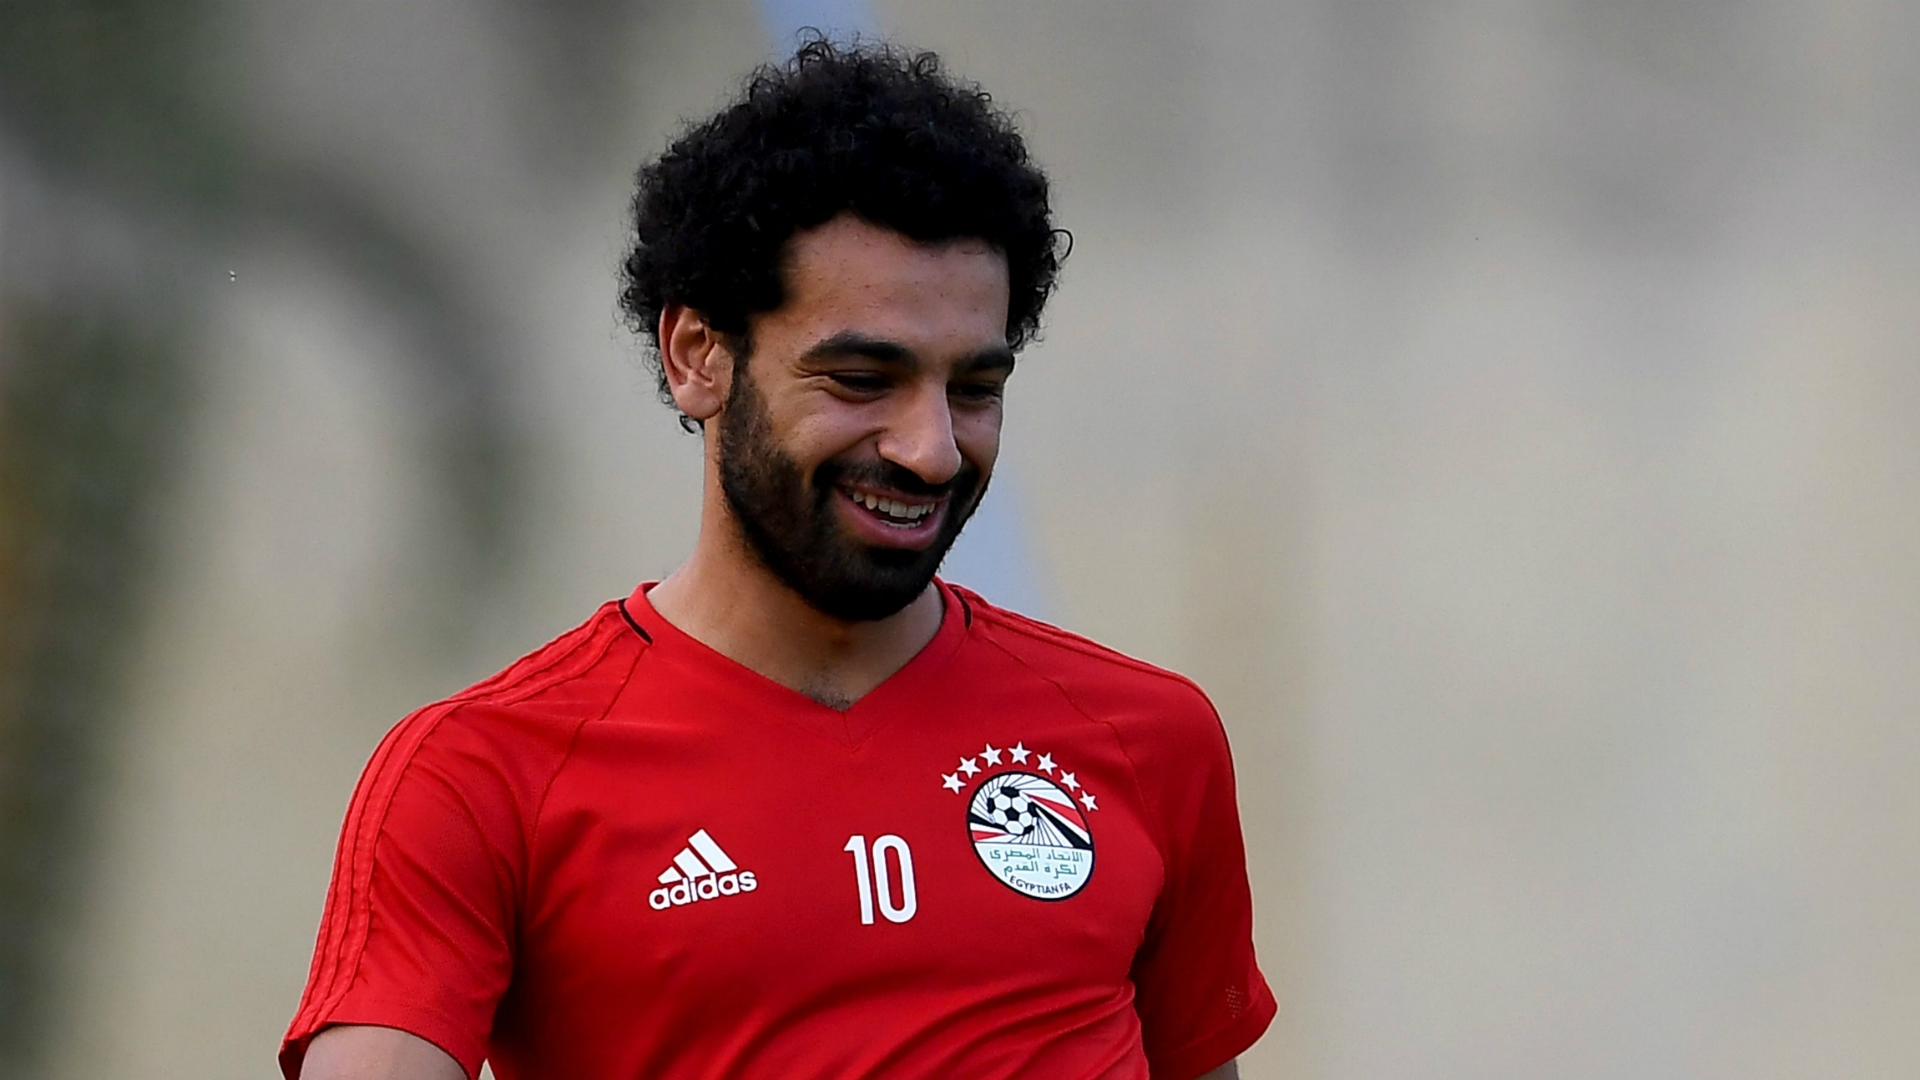 Salah's arrival at Liverpool has thrilled the side's fans. His transfer is seen a clear signal of the club's ambitions for the recent future. Manager Jurgen Klopp praised the player and his level of ambition.